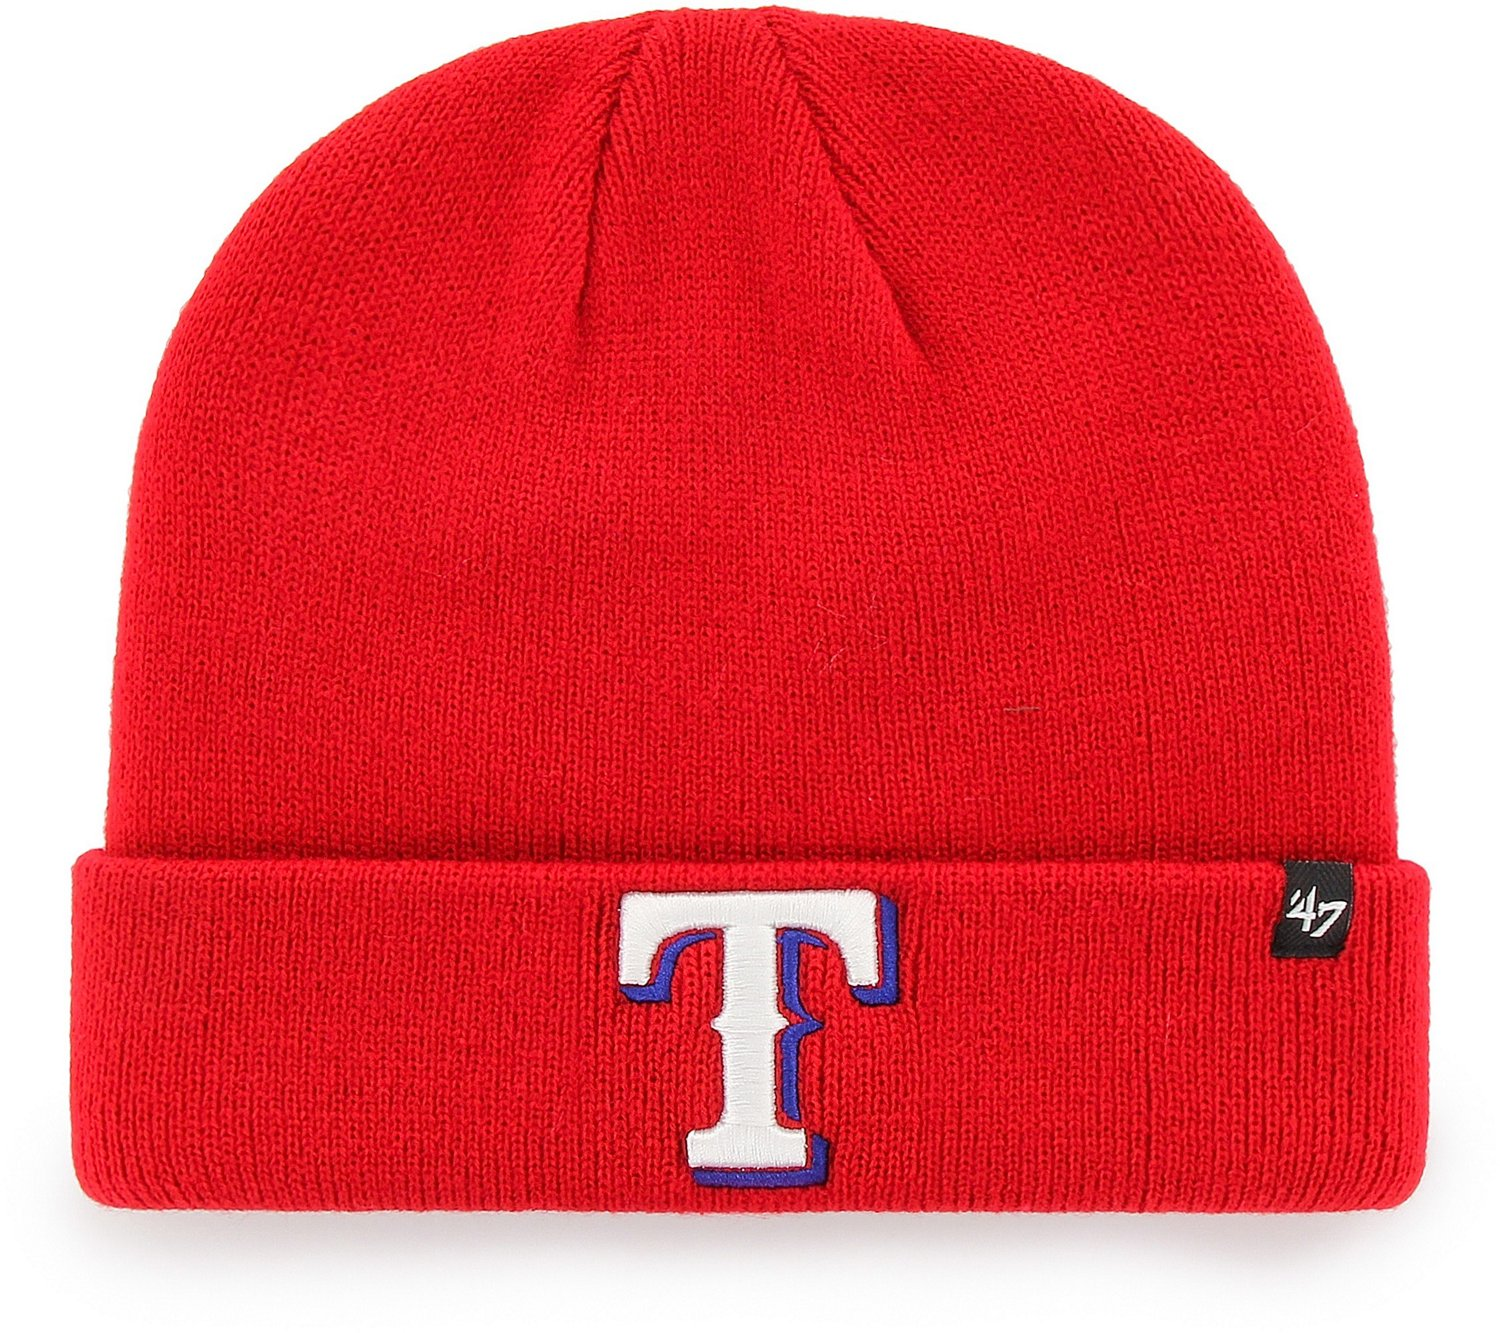 buy popular 26590 e8651 Display product reviews for  47 Men s Texas Rangers Raised Cuff Knit Hat